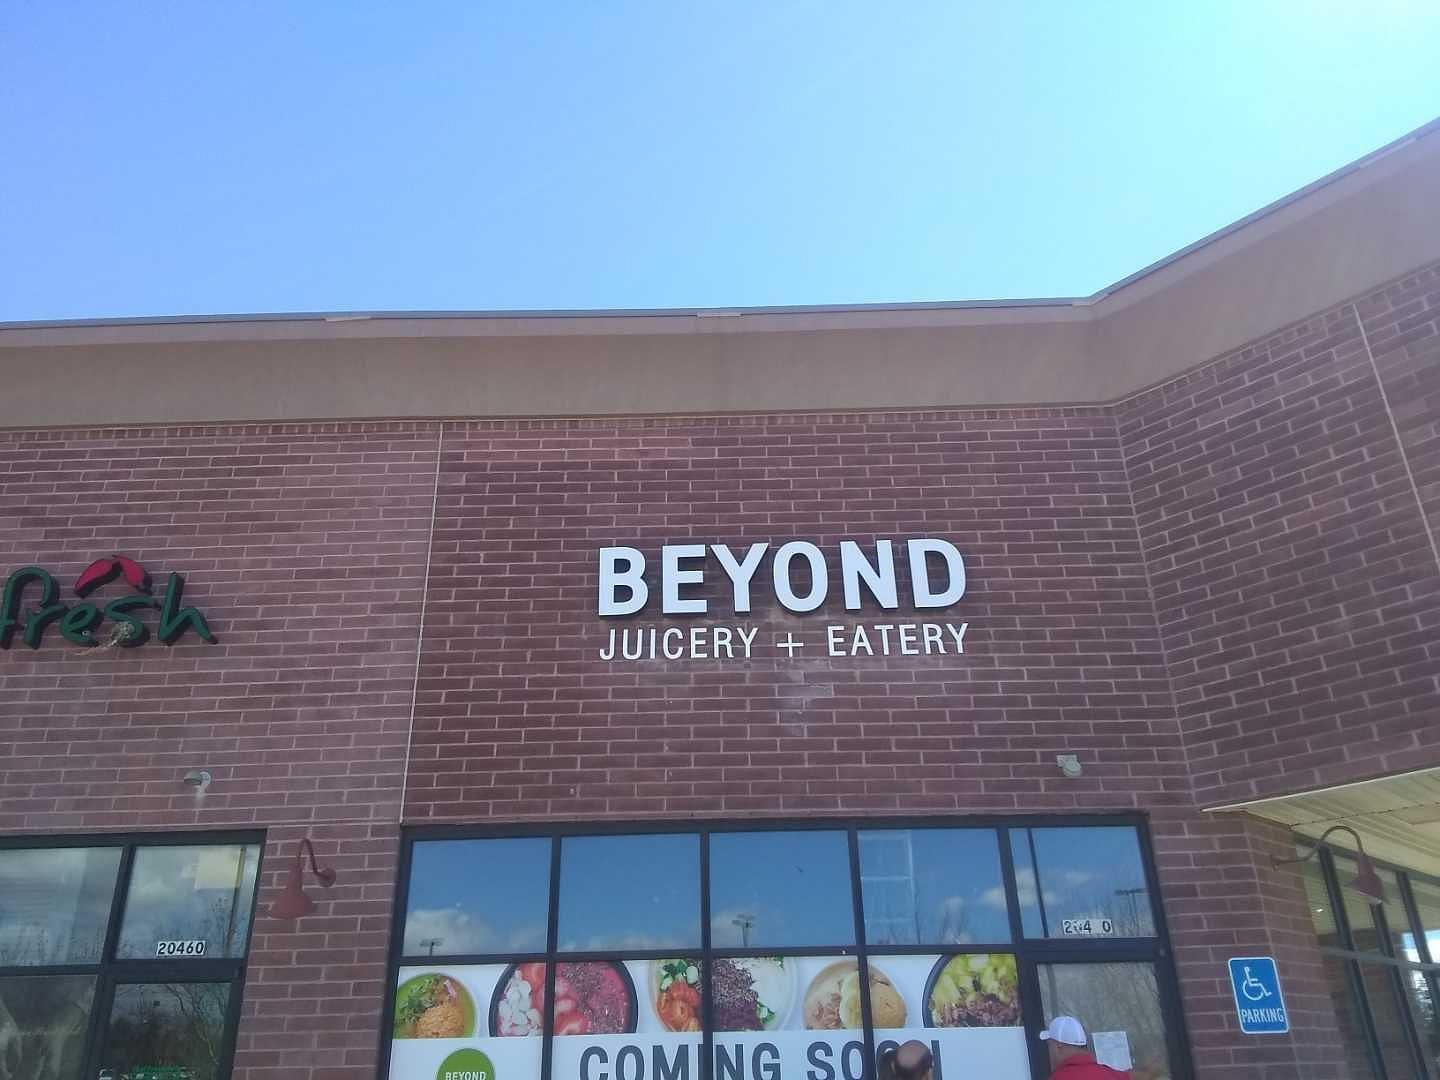 Beyond juicery eatery  white flush mounted Channel Letters